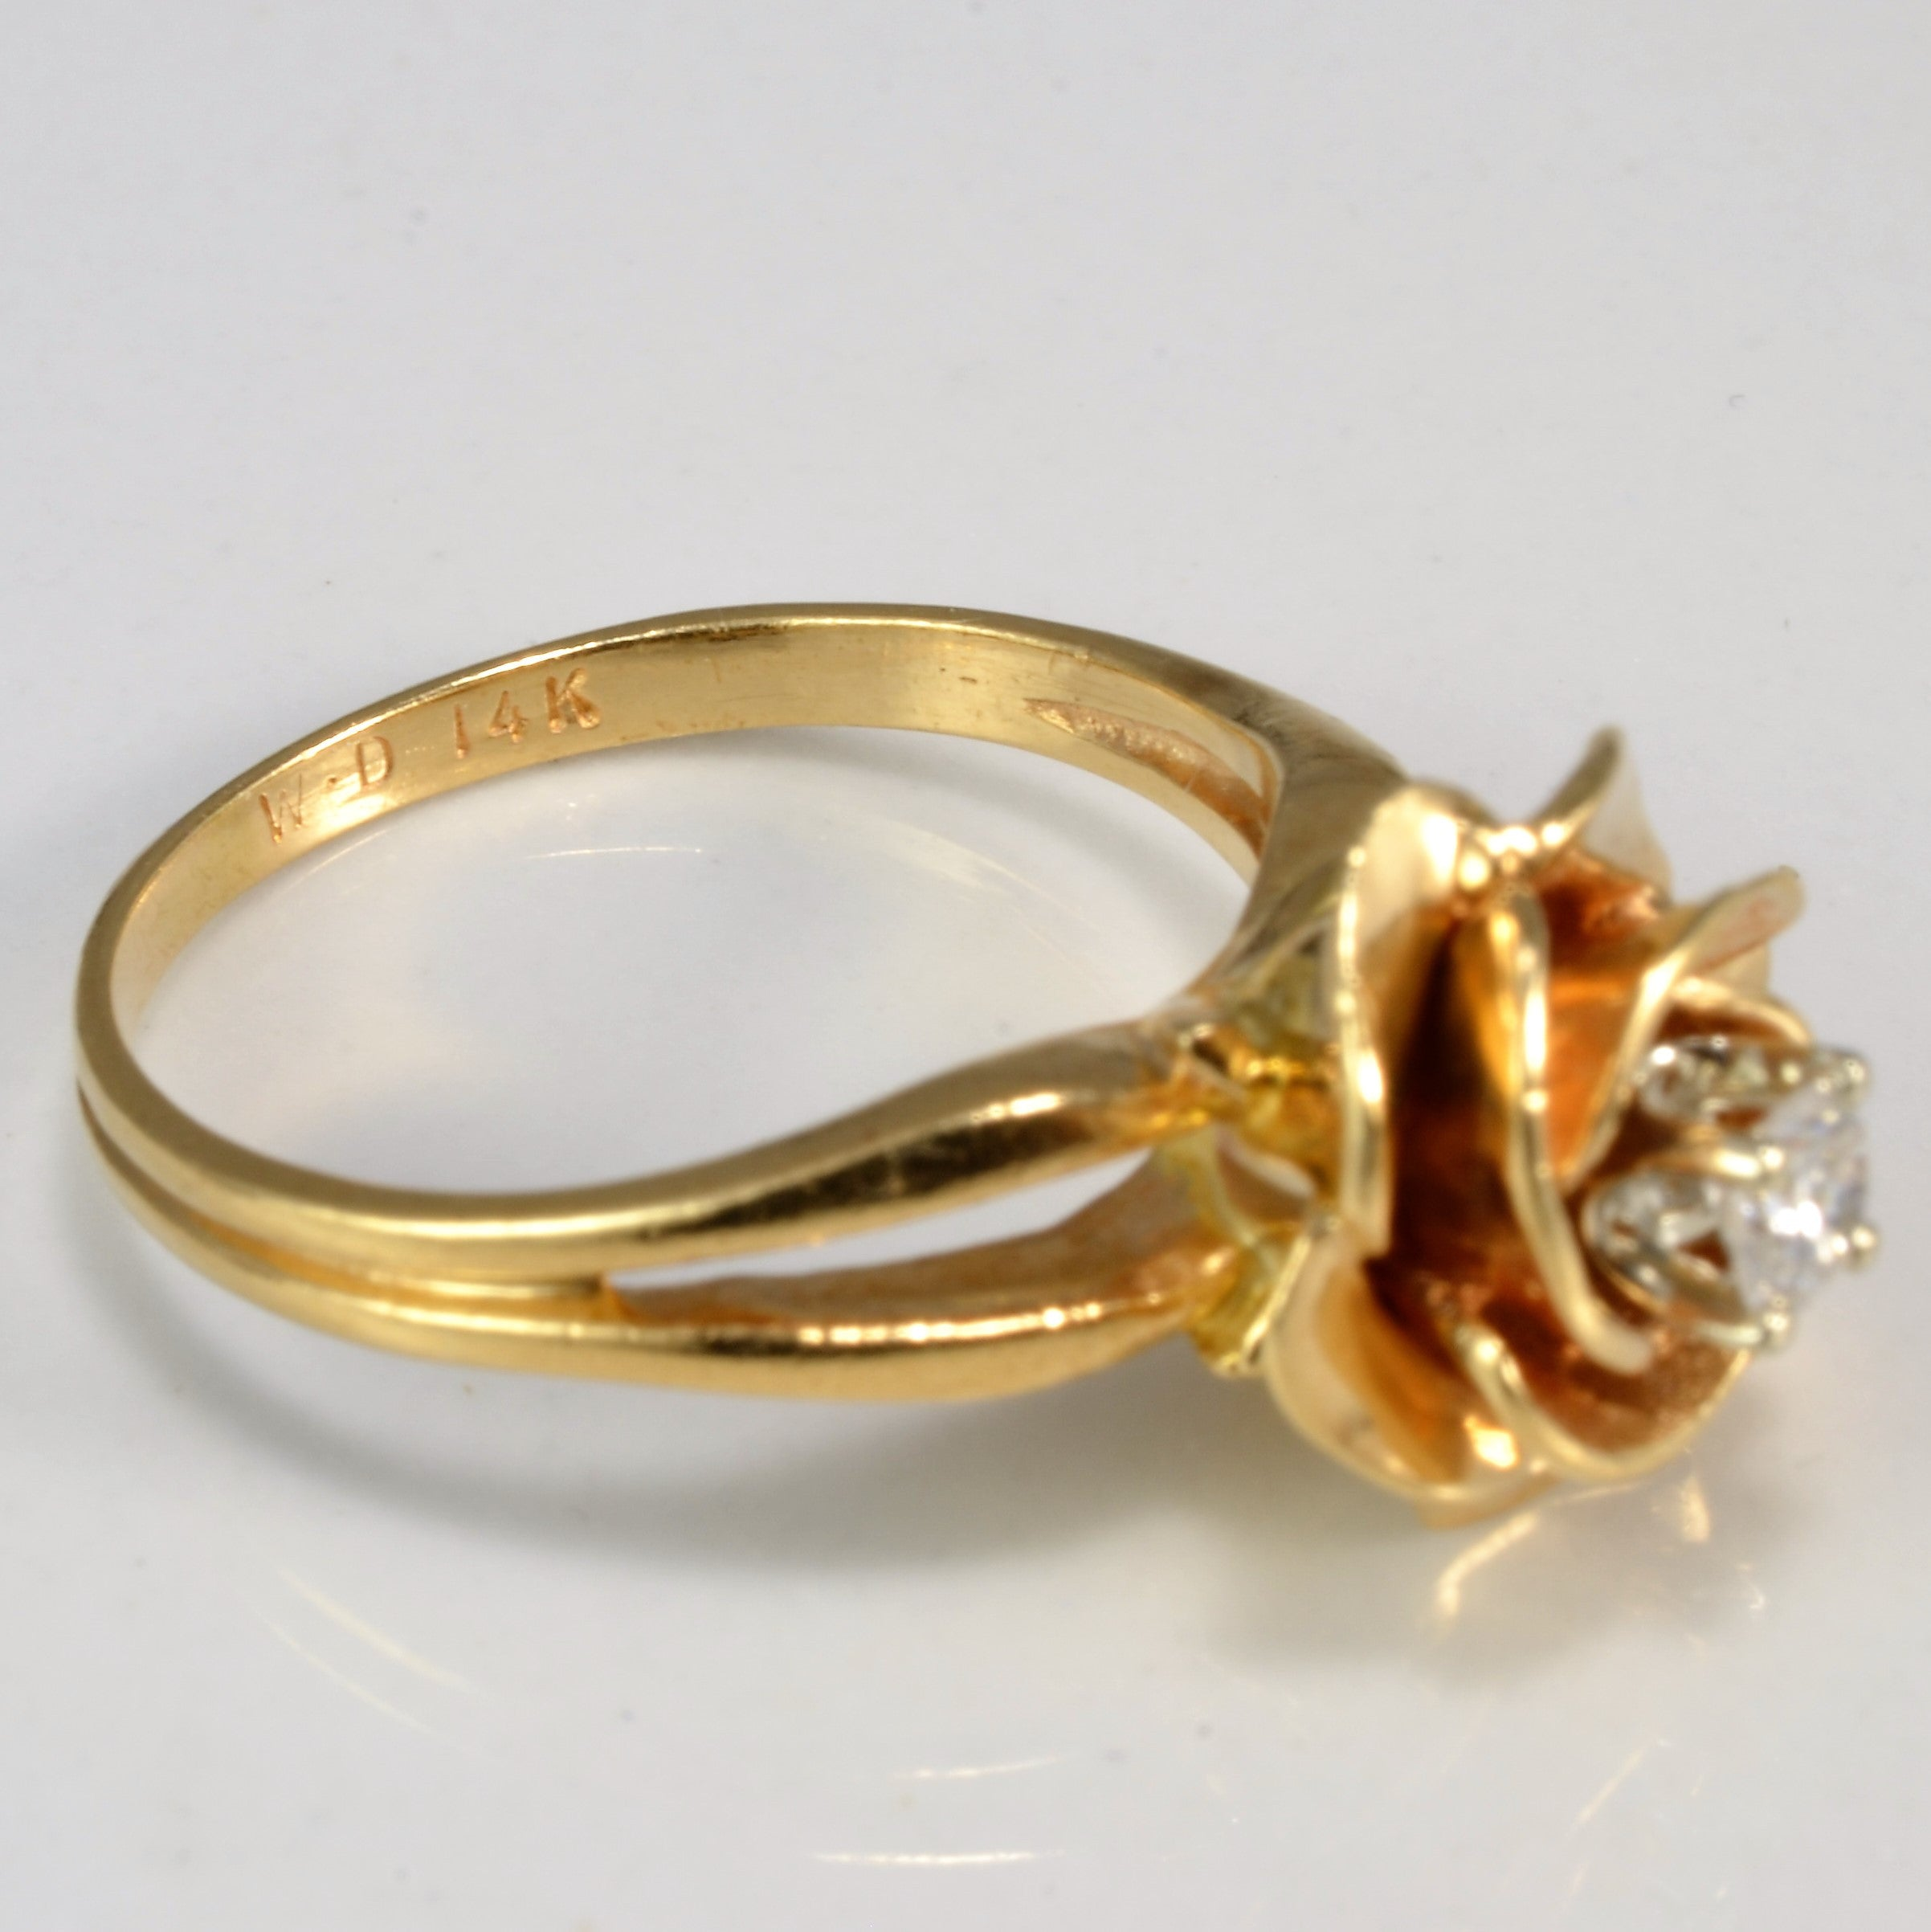 Solitaire Diamond Flower Design Ring | 0.09 ct, SZ 4.25 |